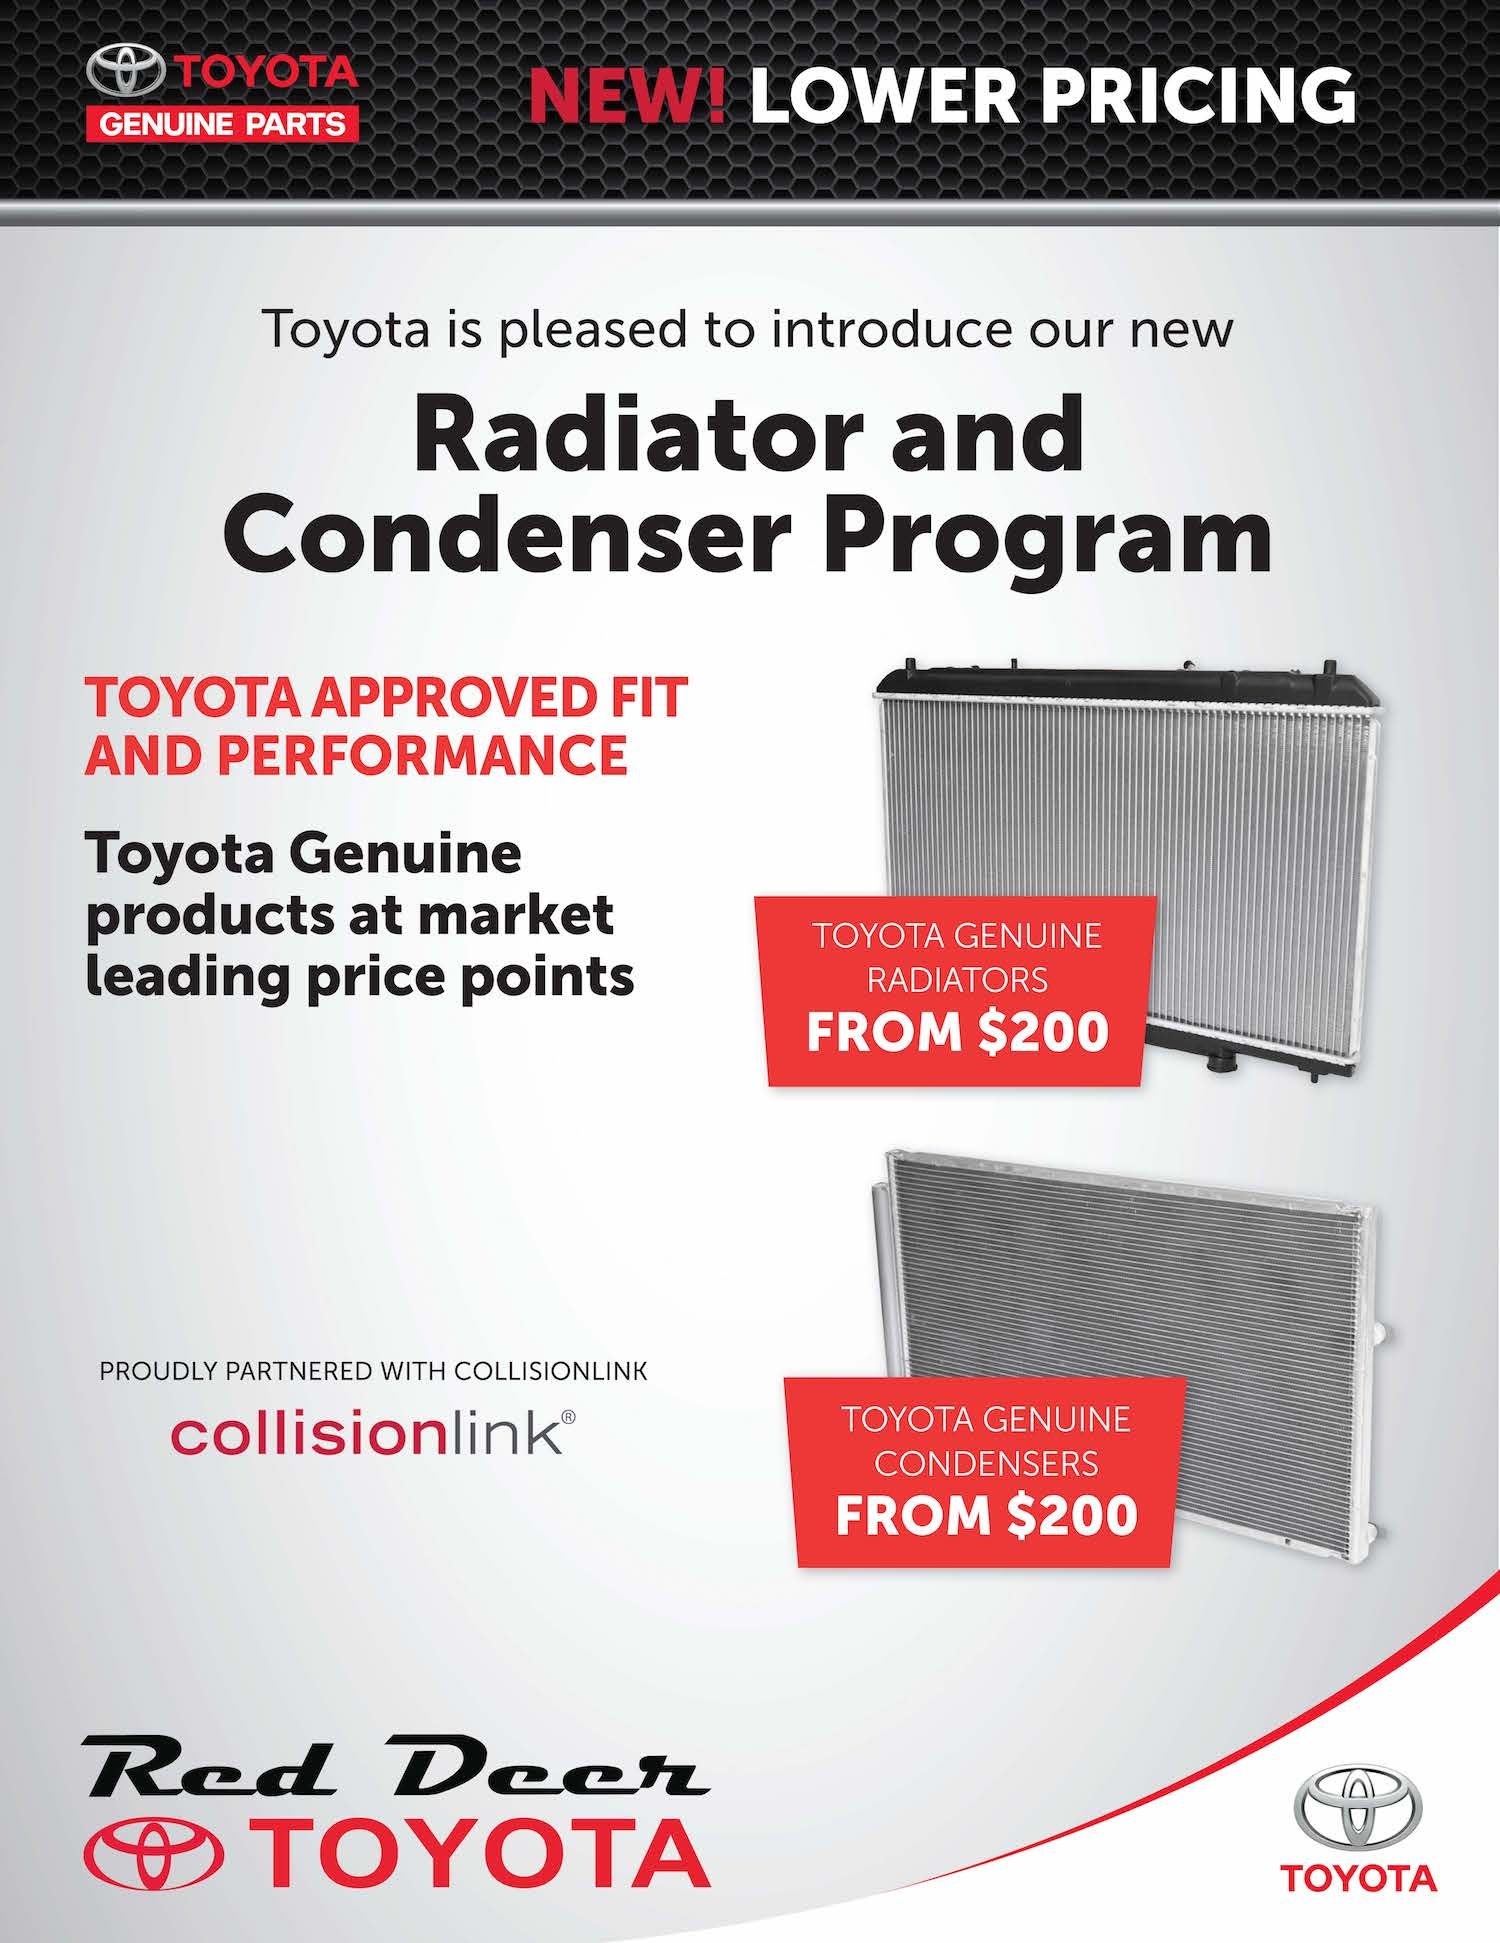 toyota radiator and condenser program